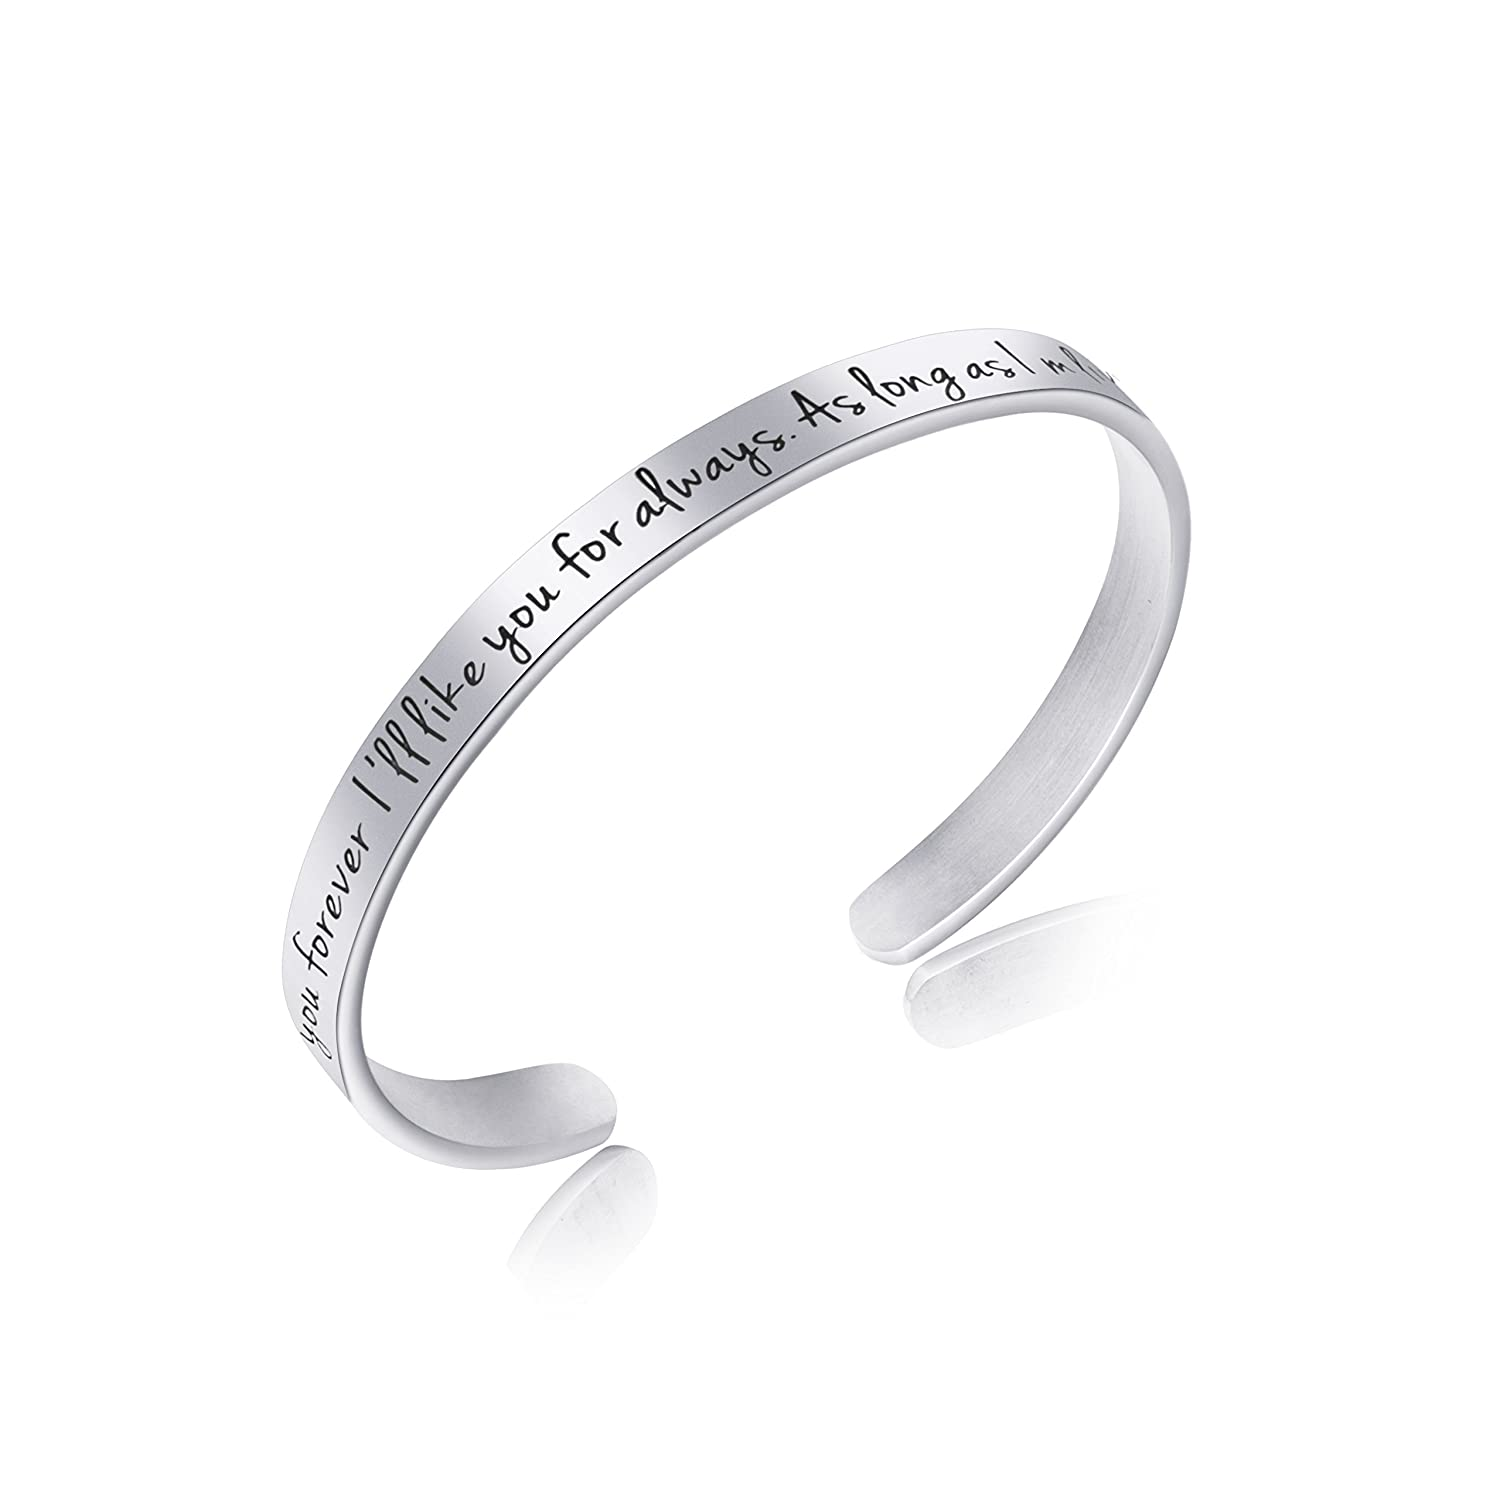 Awegift Bracelet Gifts for Mother from Children Mother's Day Jewelry from Daughter Son I' ll like you always As long as I' m living my mommy you' ll be B07F1NS4C5_US